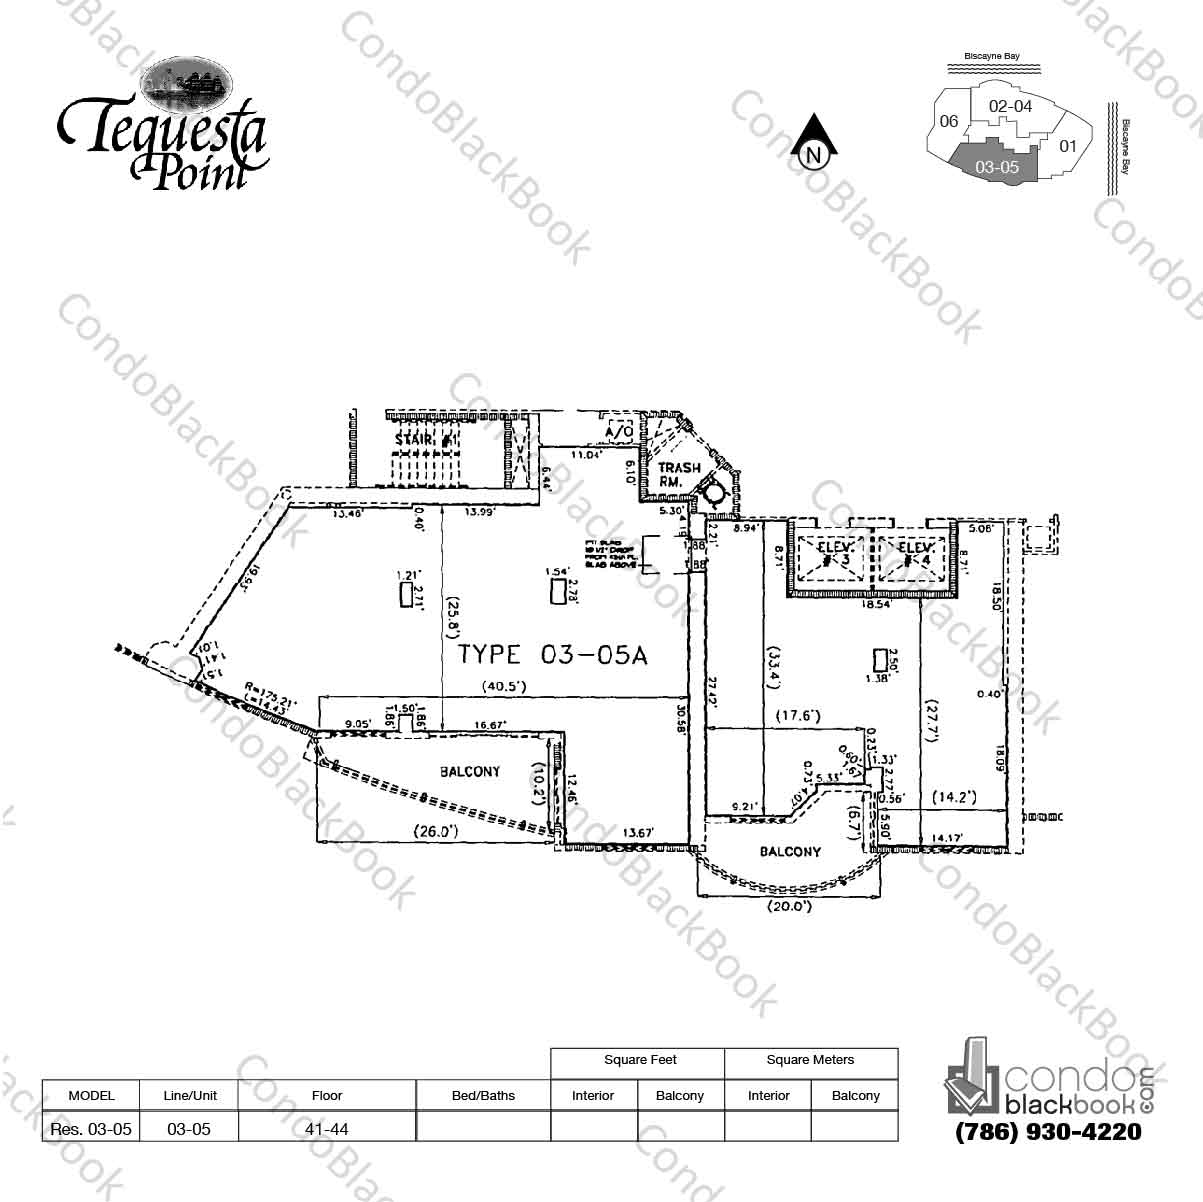 Floor plan for Three Tequesta Point Brickell Key Miami, model Res. 03-05, line 03-05